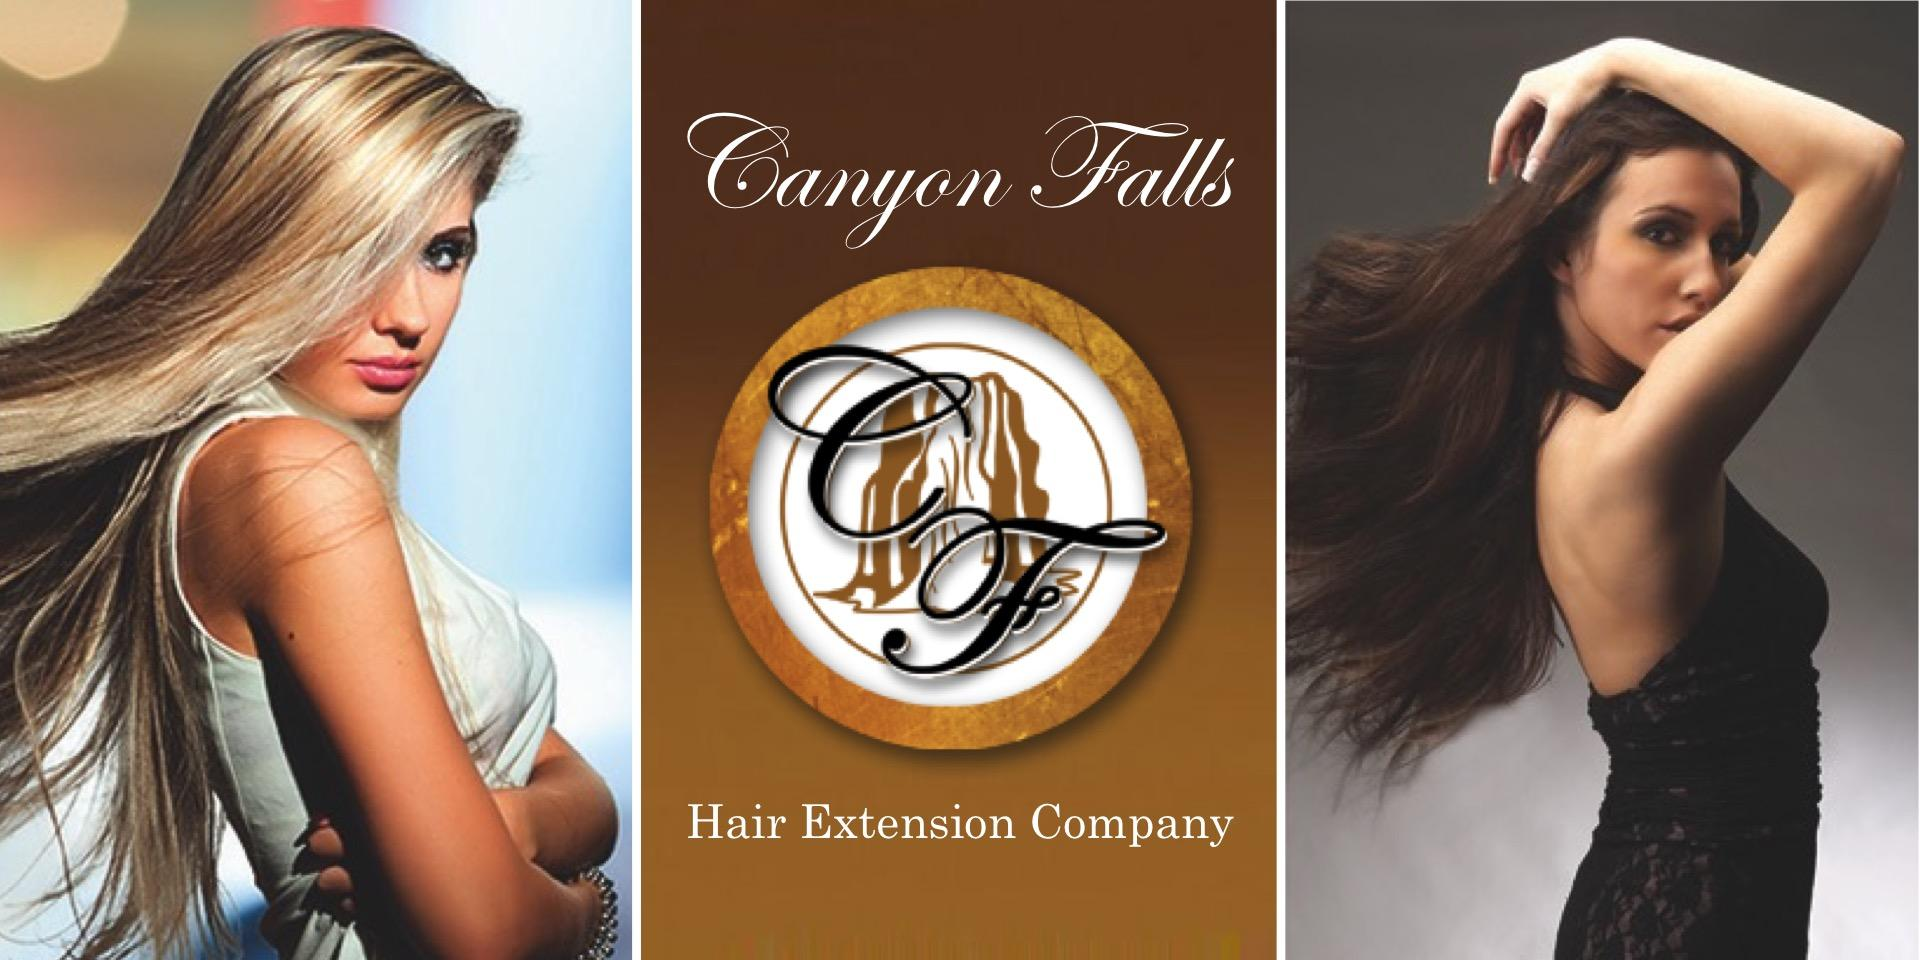 Shop canyon falls spa and salon las vegas hair extensions in please note you will be redirected to thehairextensioncompany extensions pmusecretfo Gallery